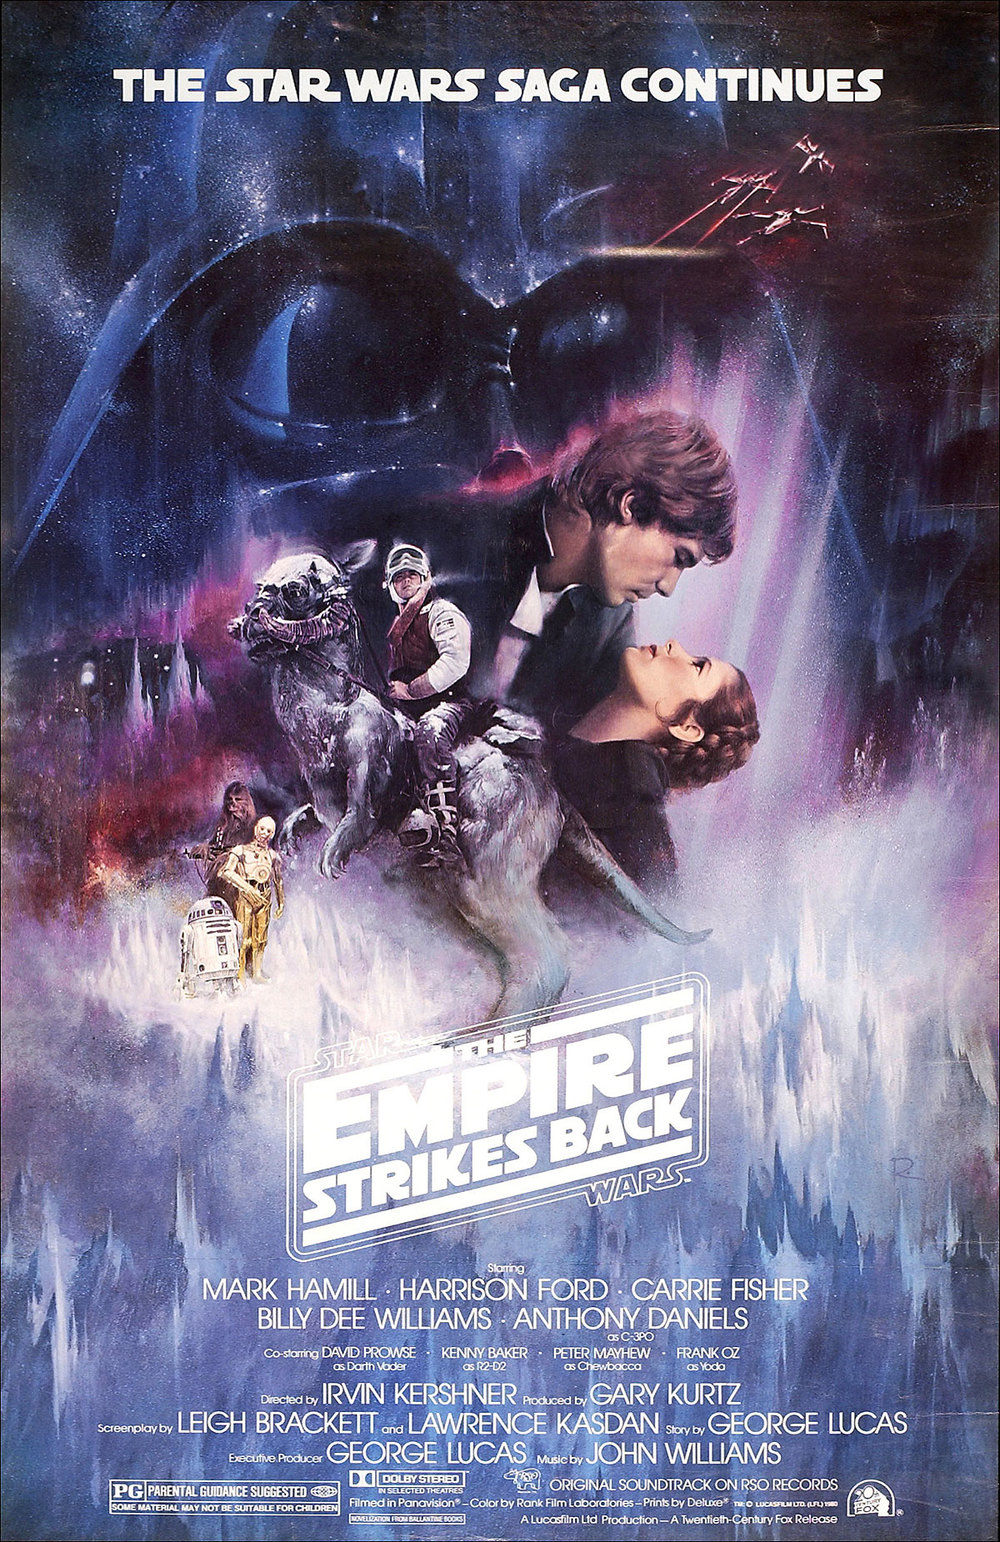 Star Wars Episode V The Empire Strikes Back (1980)